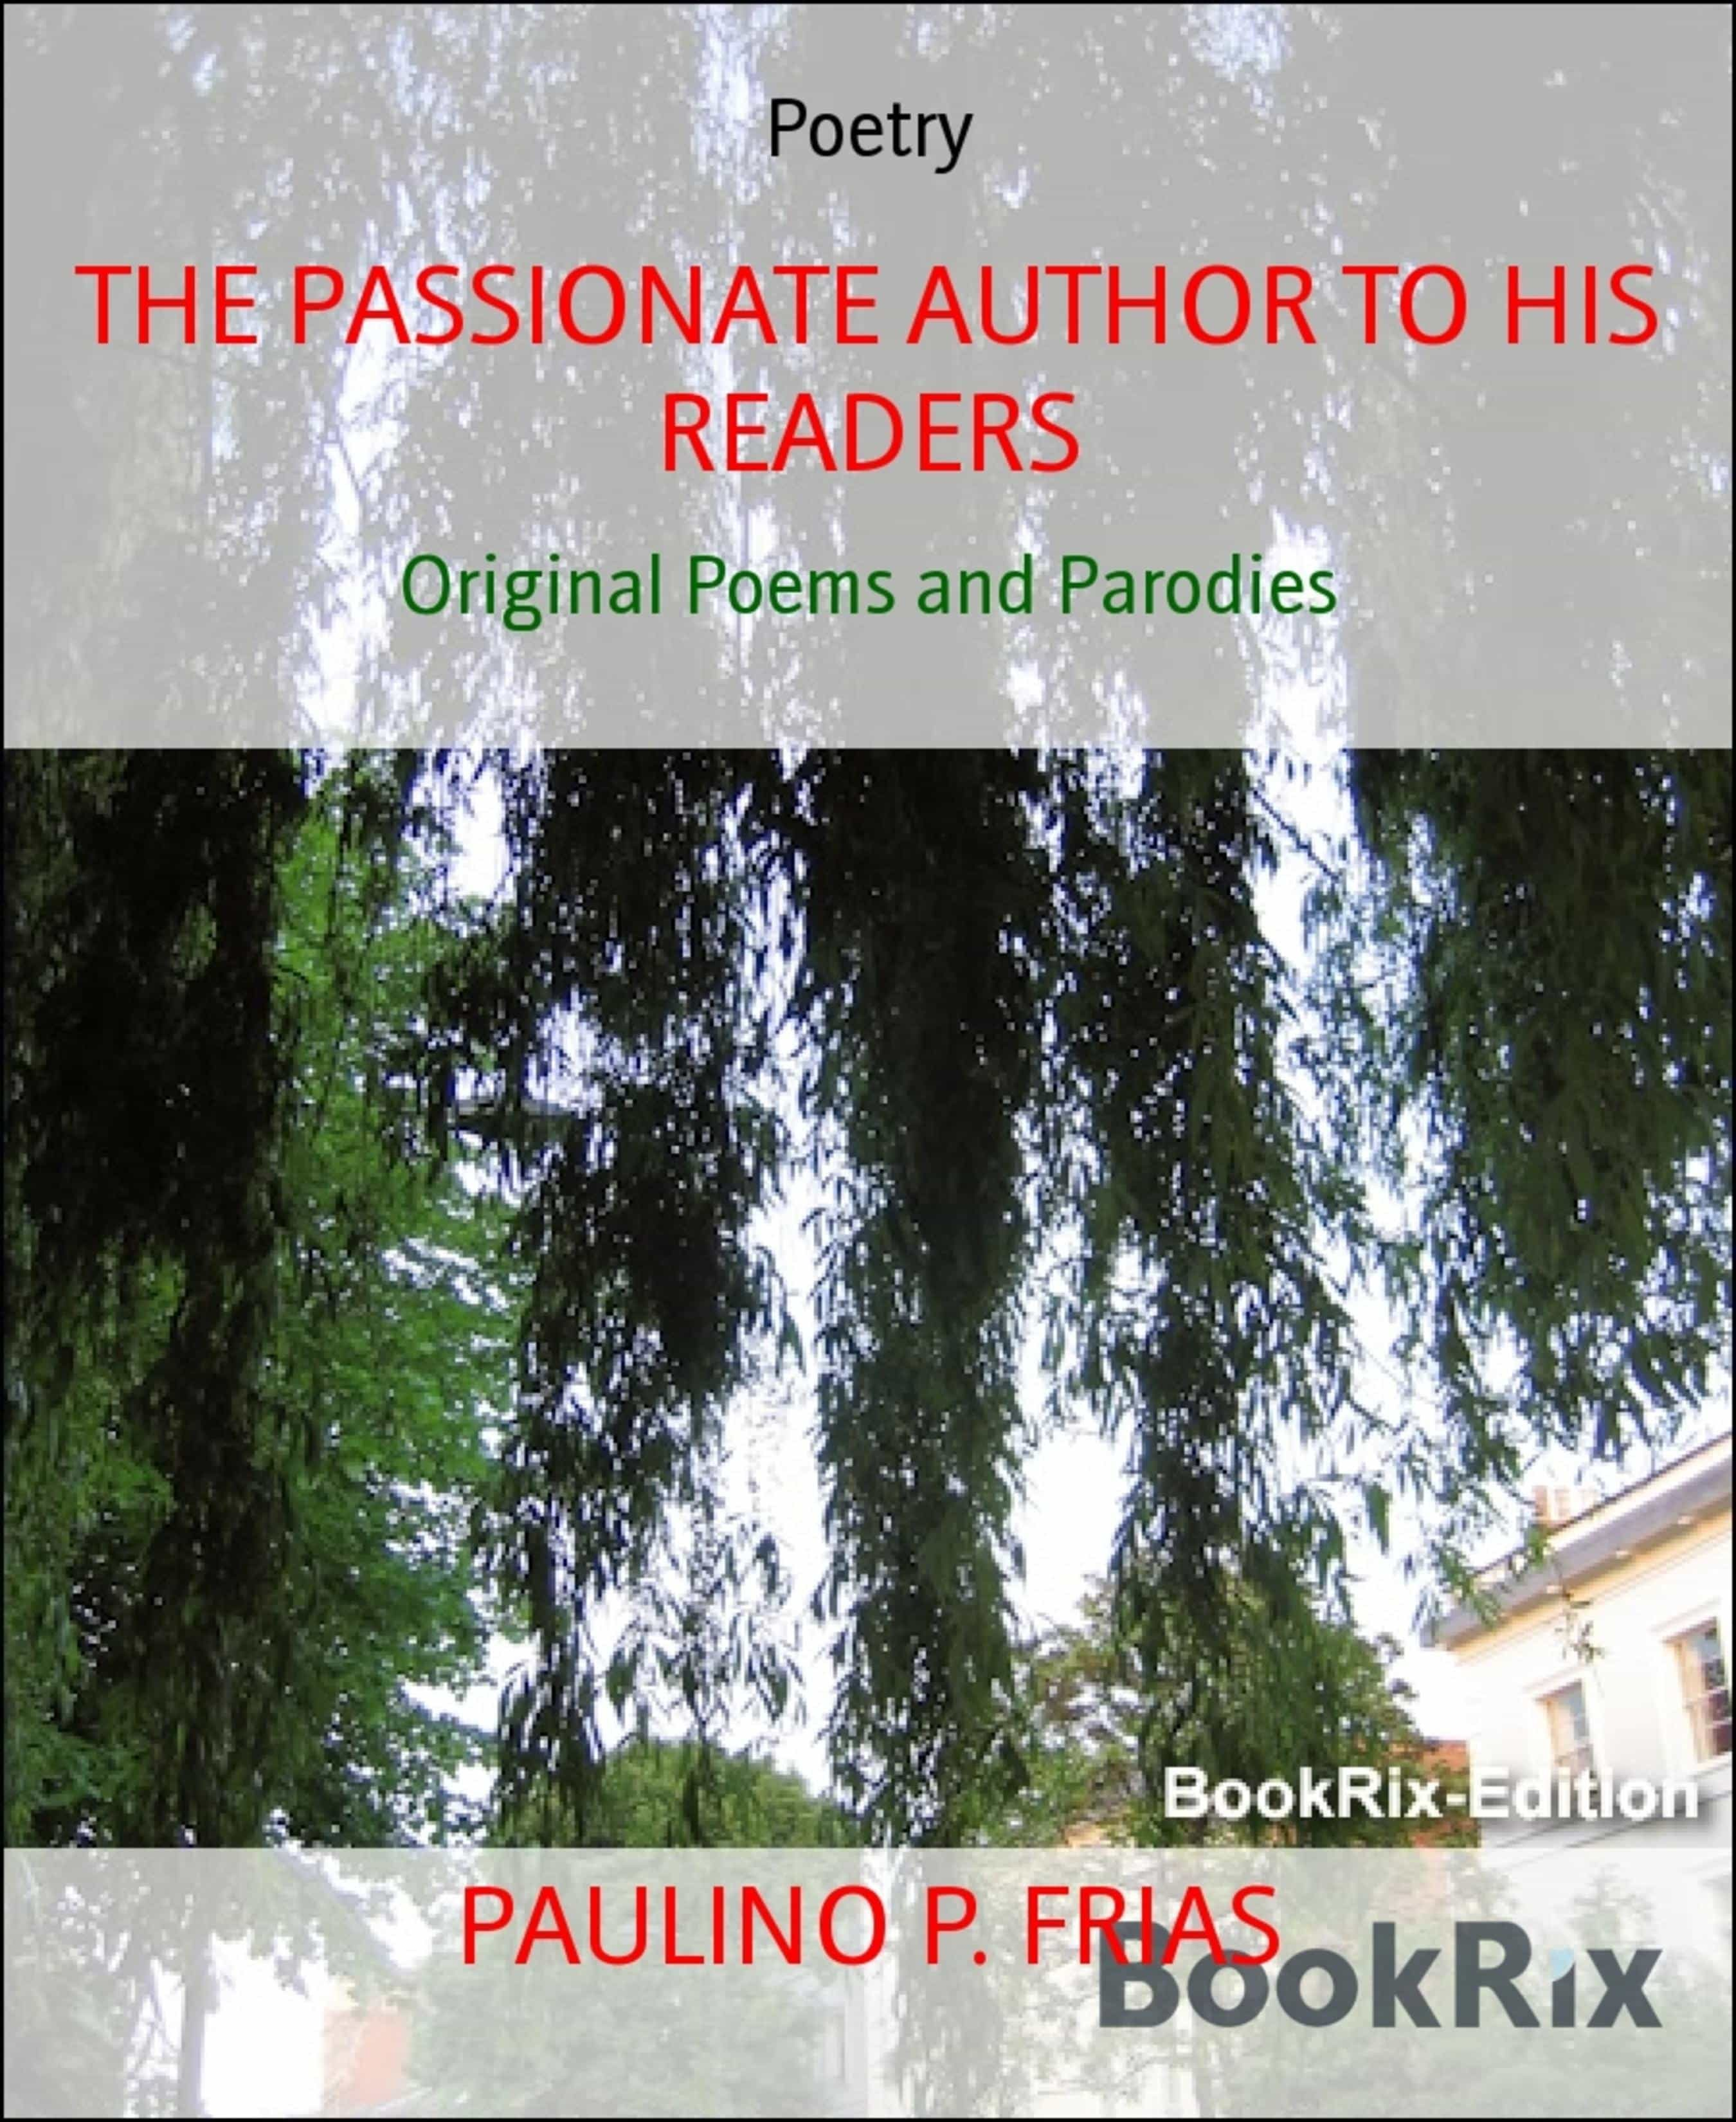 THE PASSIONATE AUTHOR TO HIS READERS